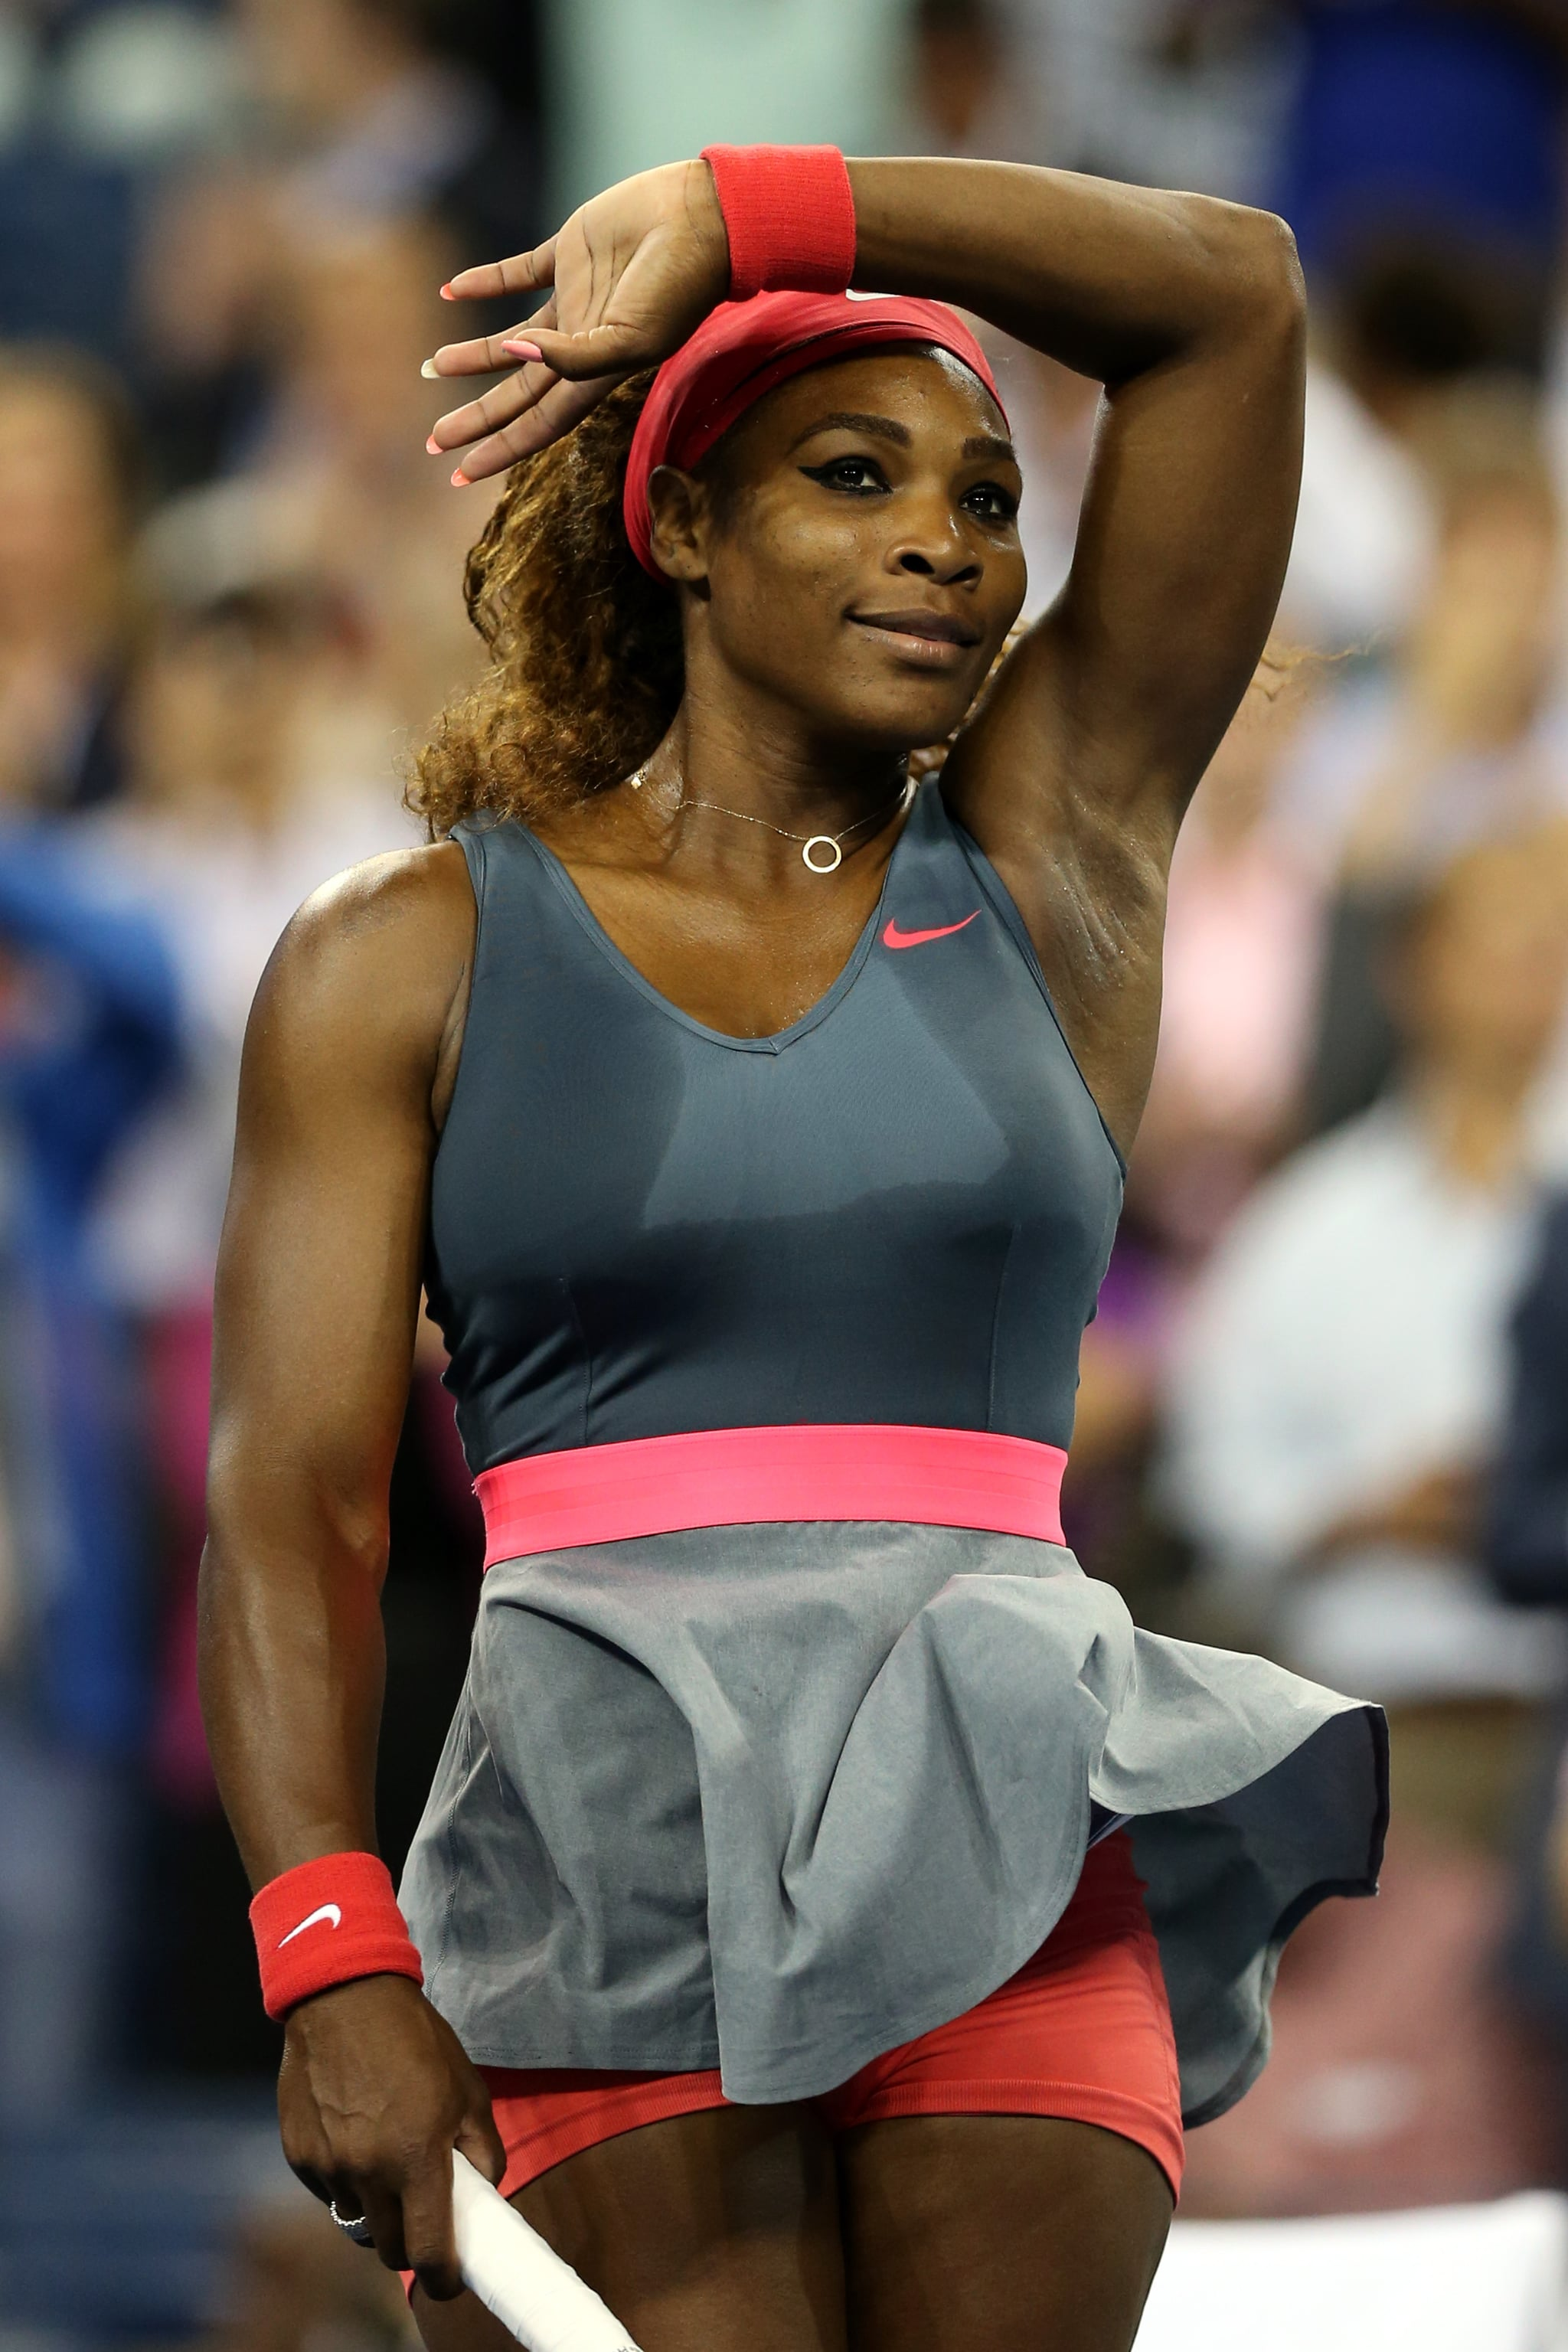 Serena Williams paired dark gray with pops of pink and red at the 2013 US Open.